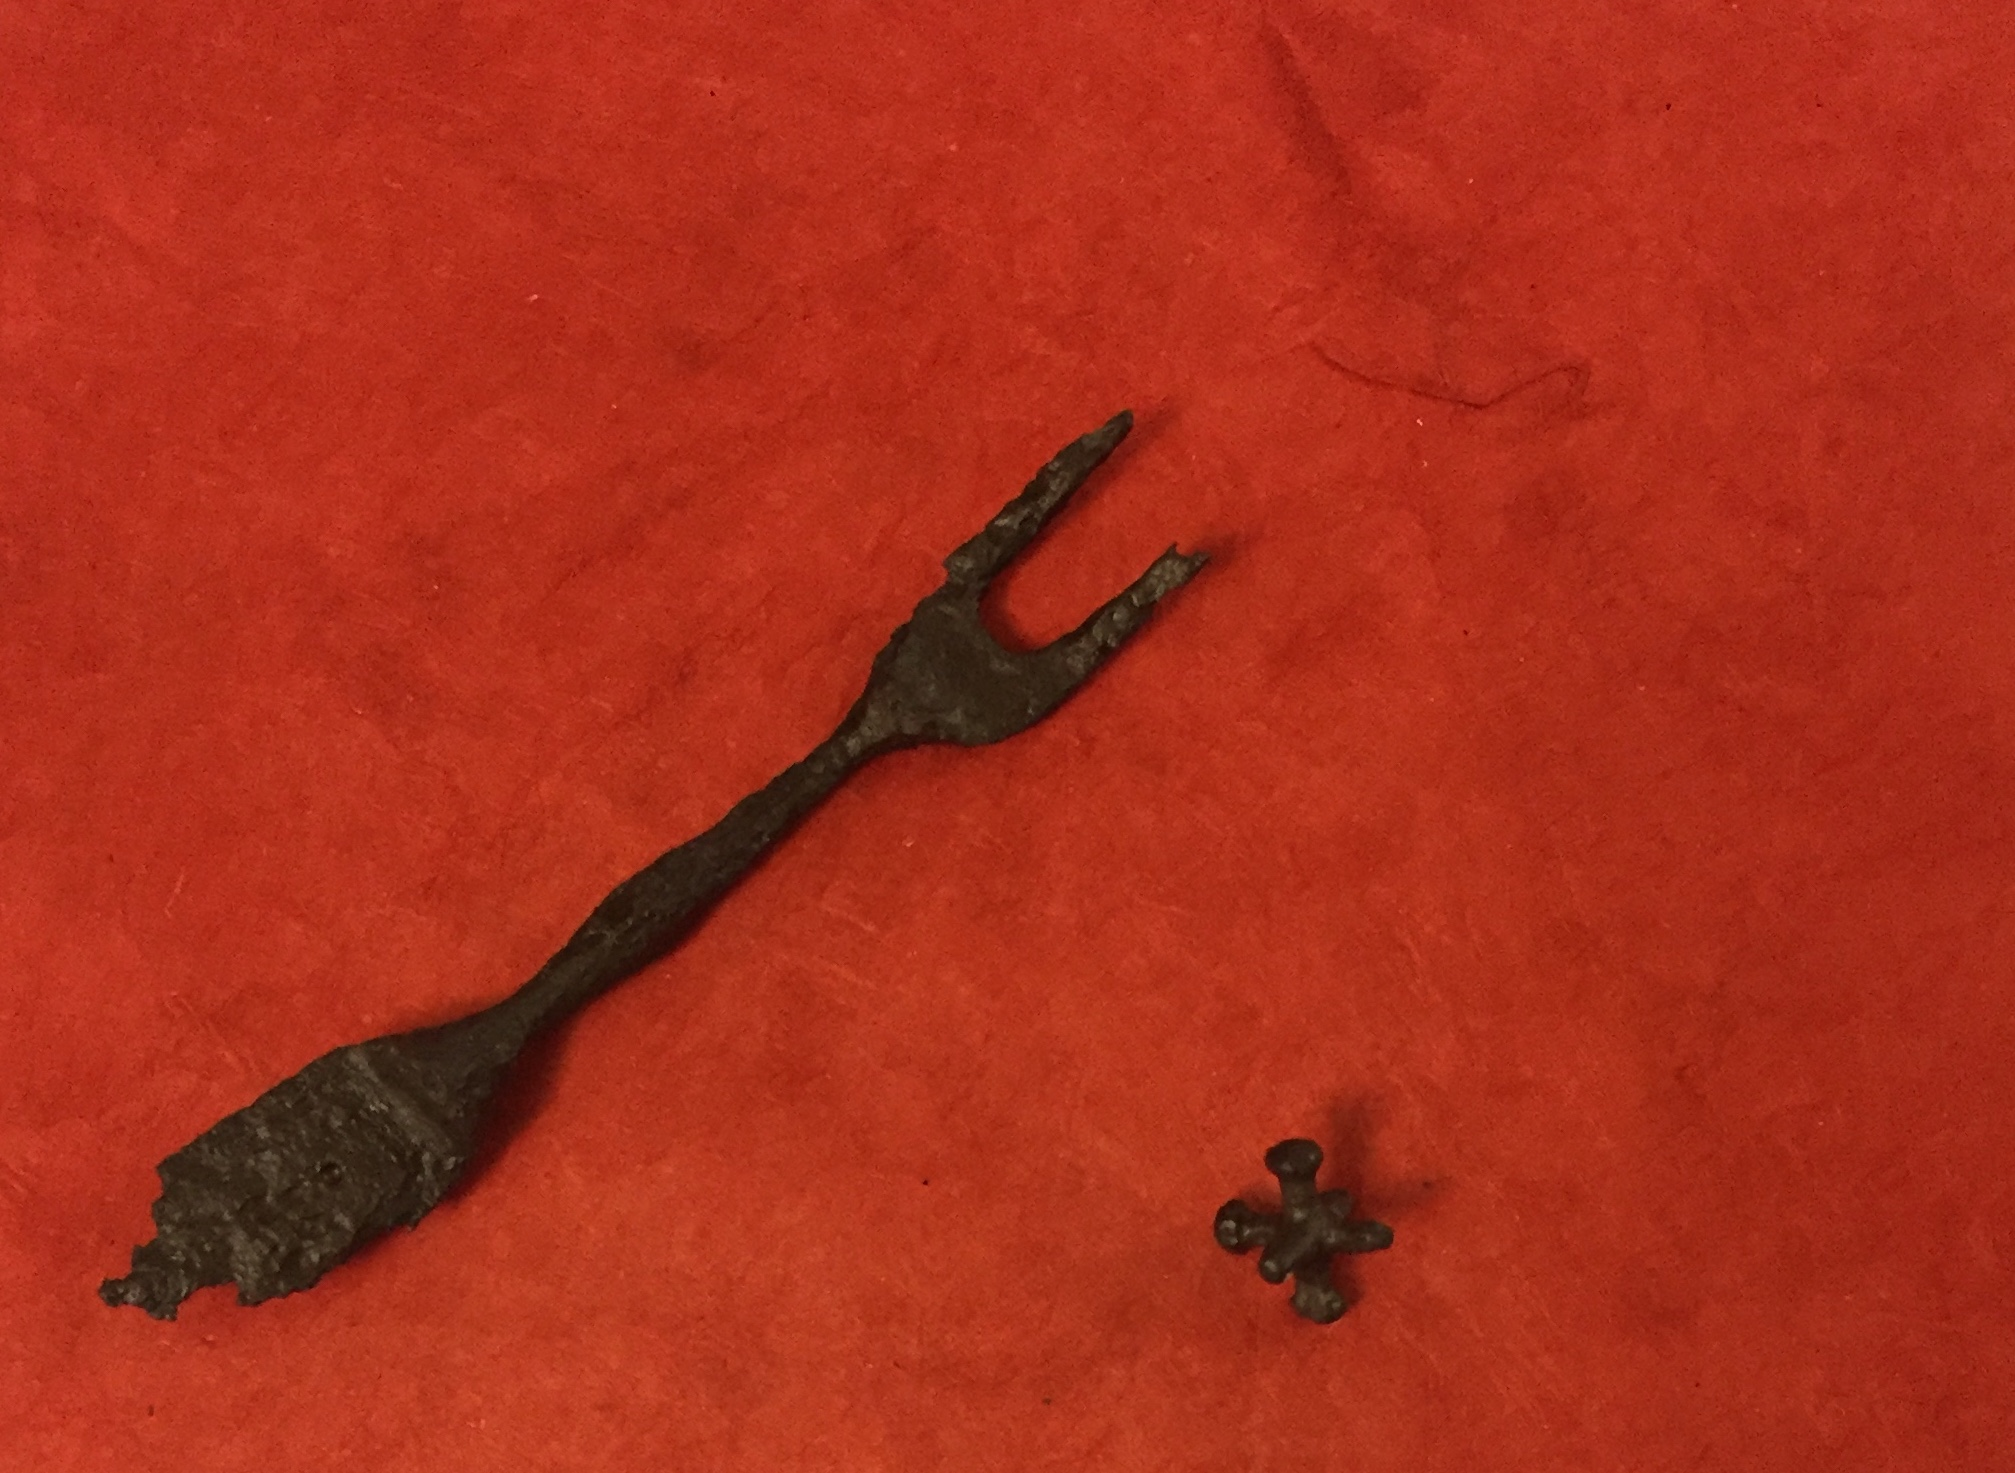 Artifacts excavated from land occupied by freed persons